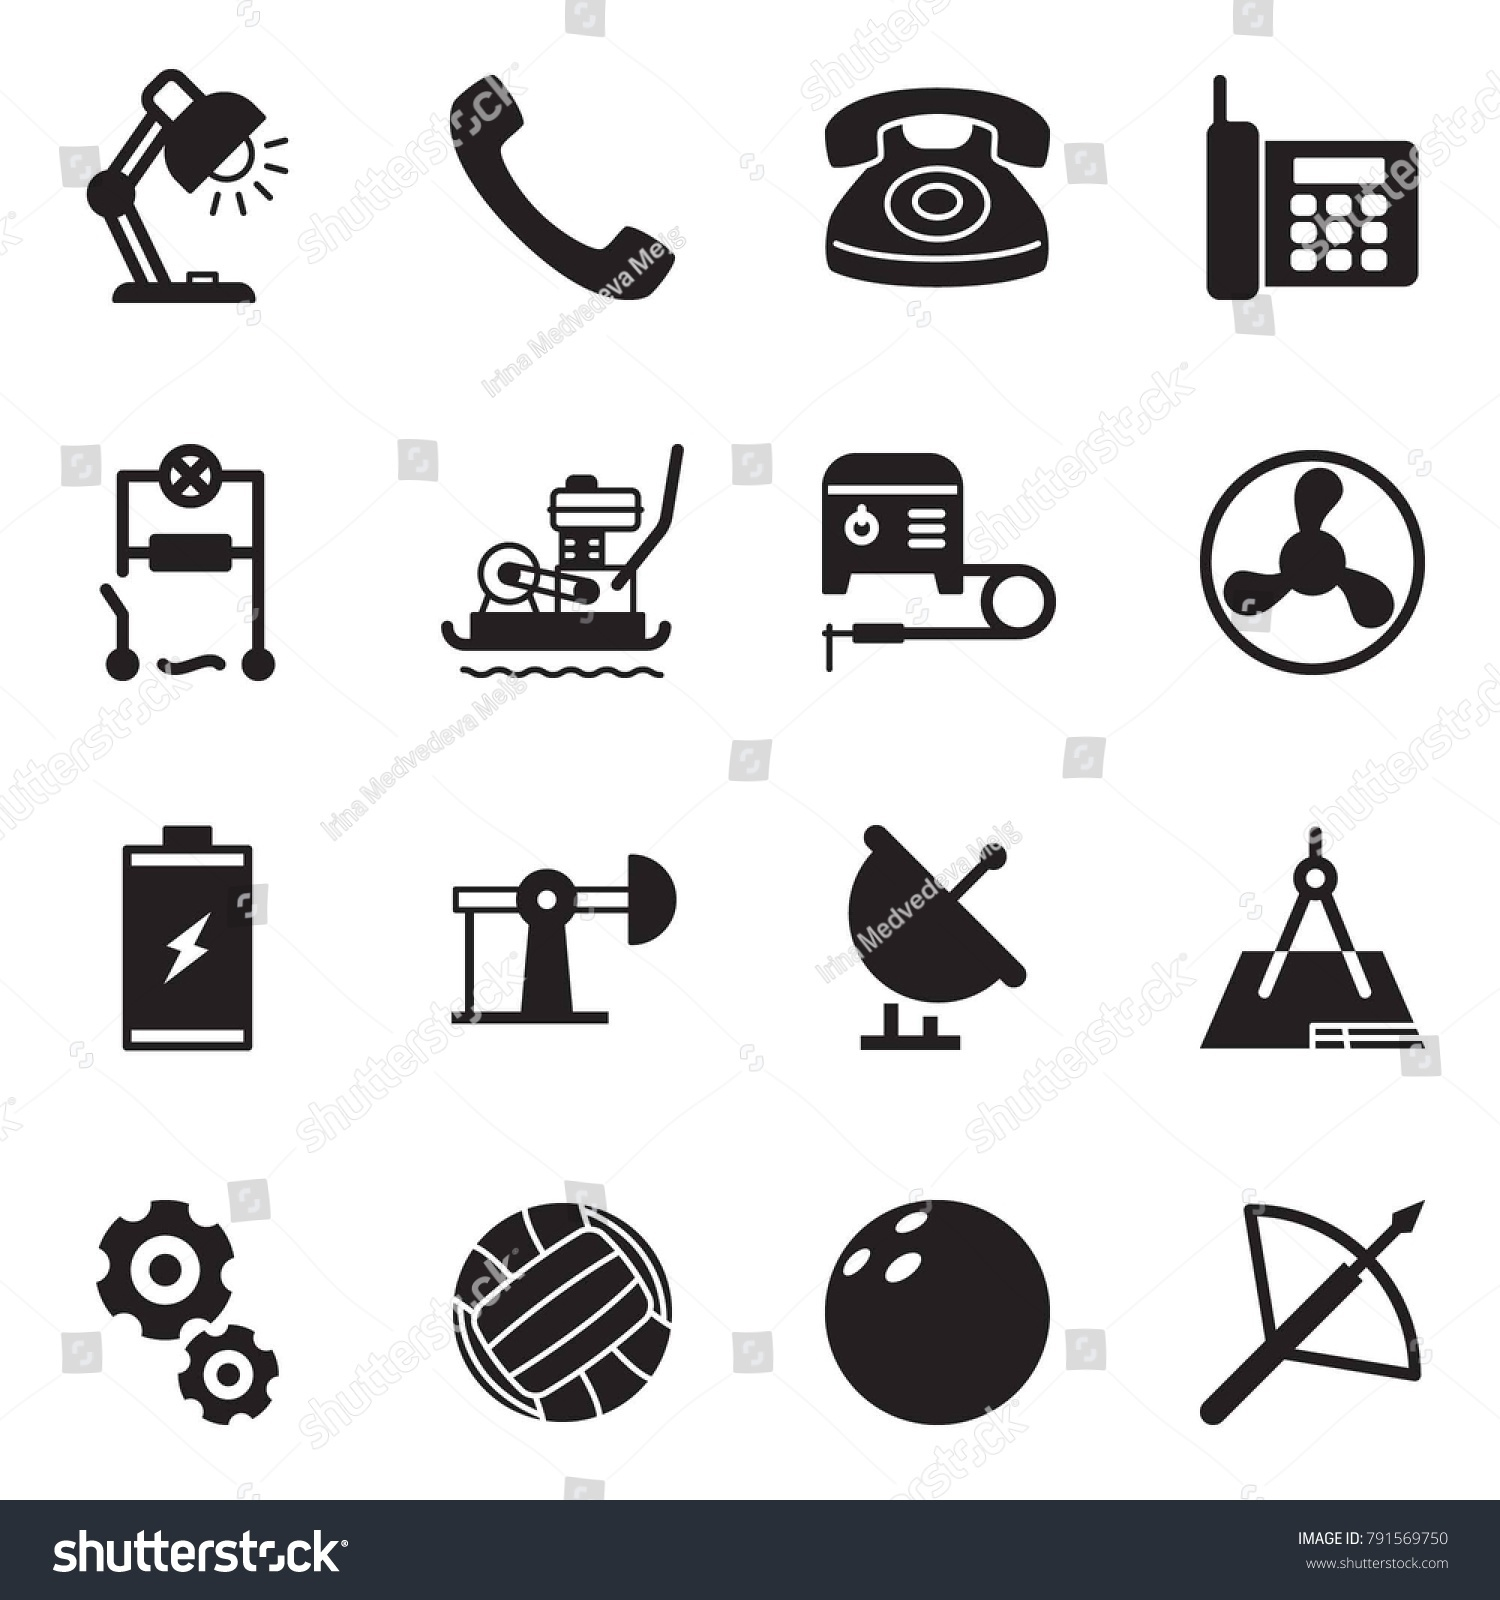 Solid black vector icon set - table lamp vector, phone, wiring, plate  compactor